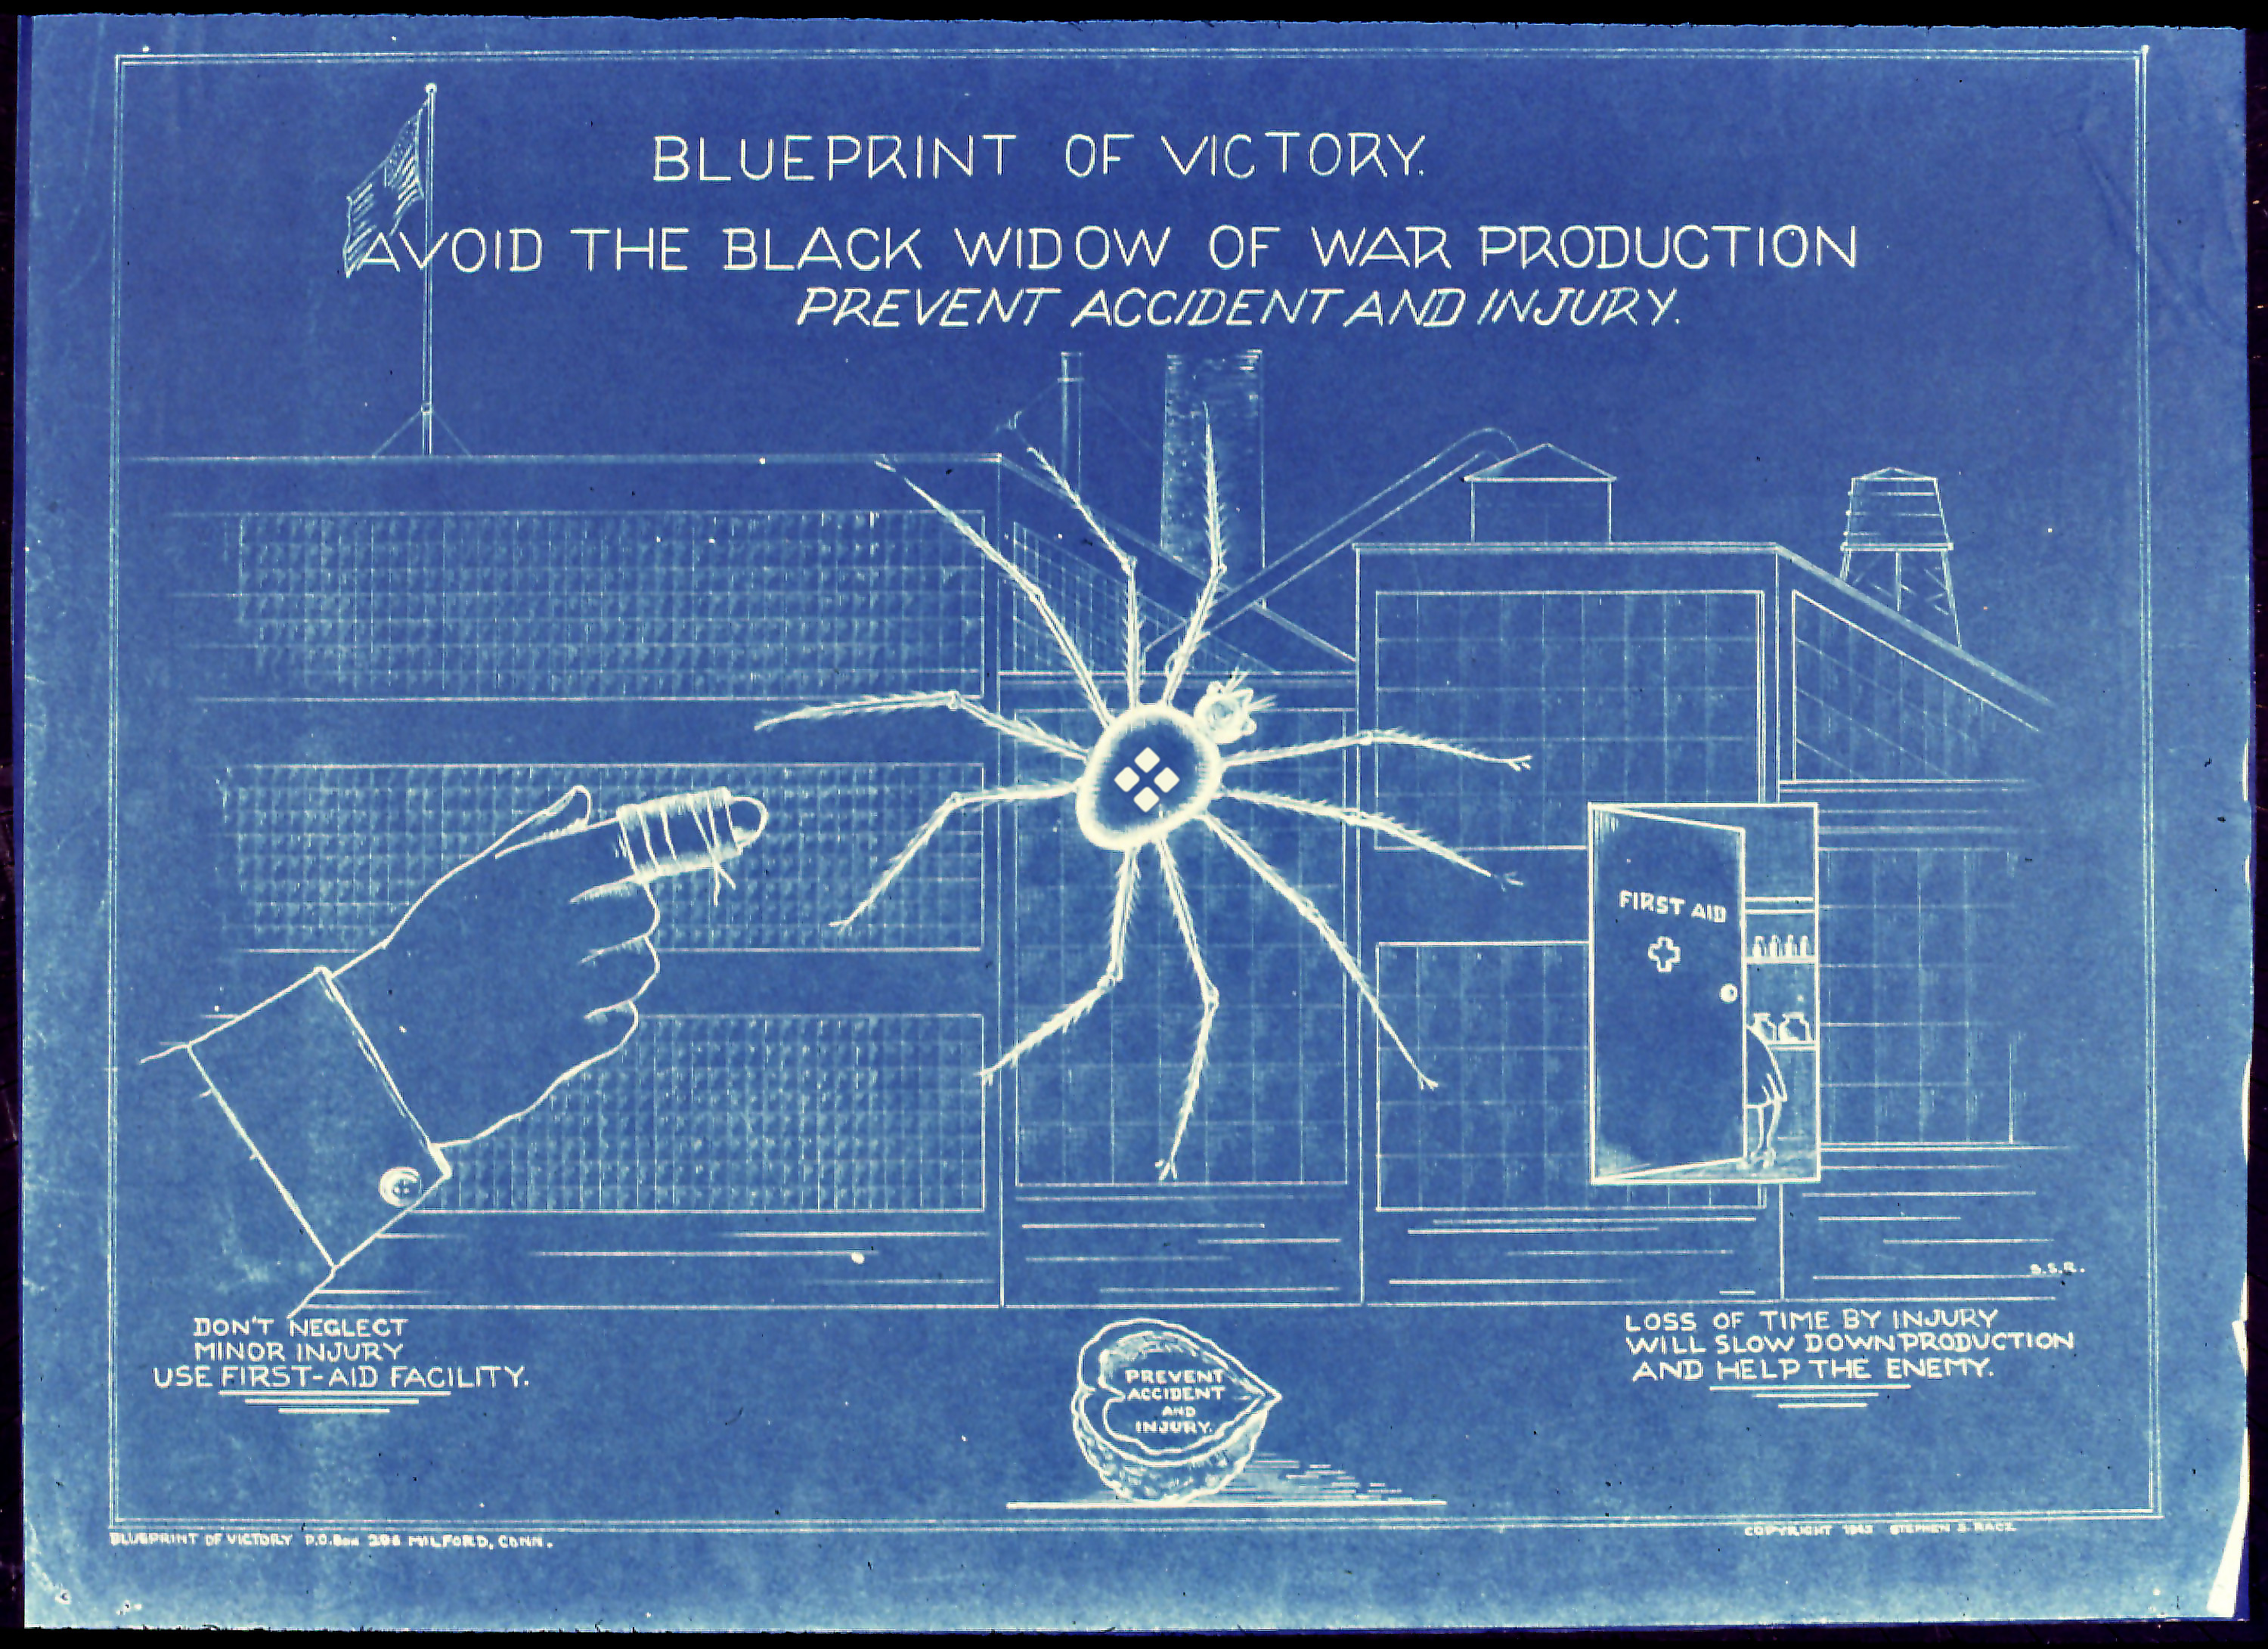 Fileblueprint of victory avoid the black widow of war fileblueprint of victory avoid the black widow of war production nara 534556 malvernweather Images